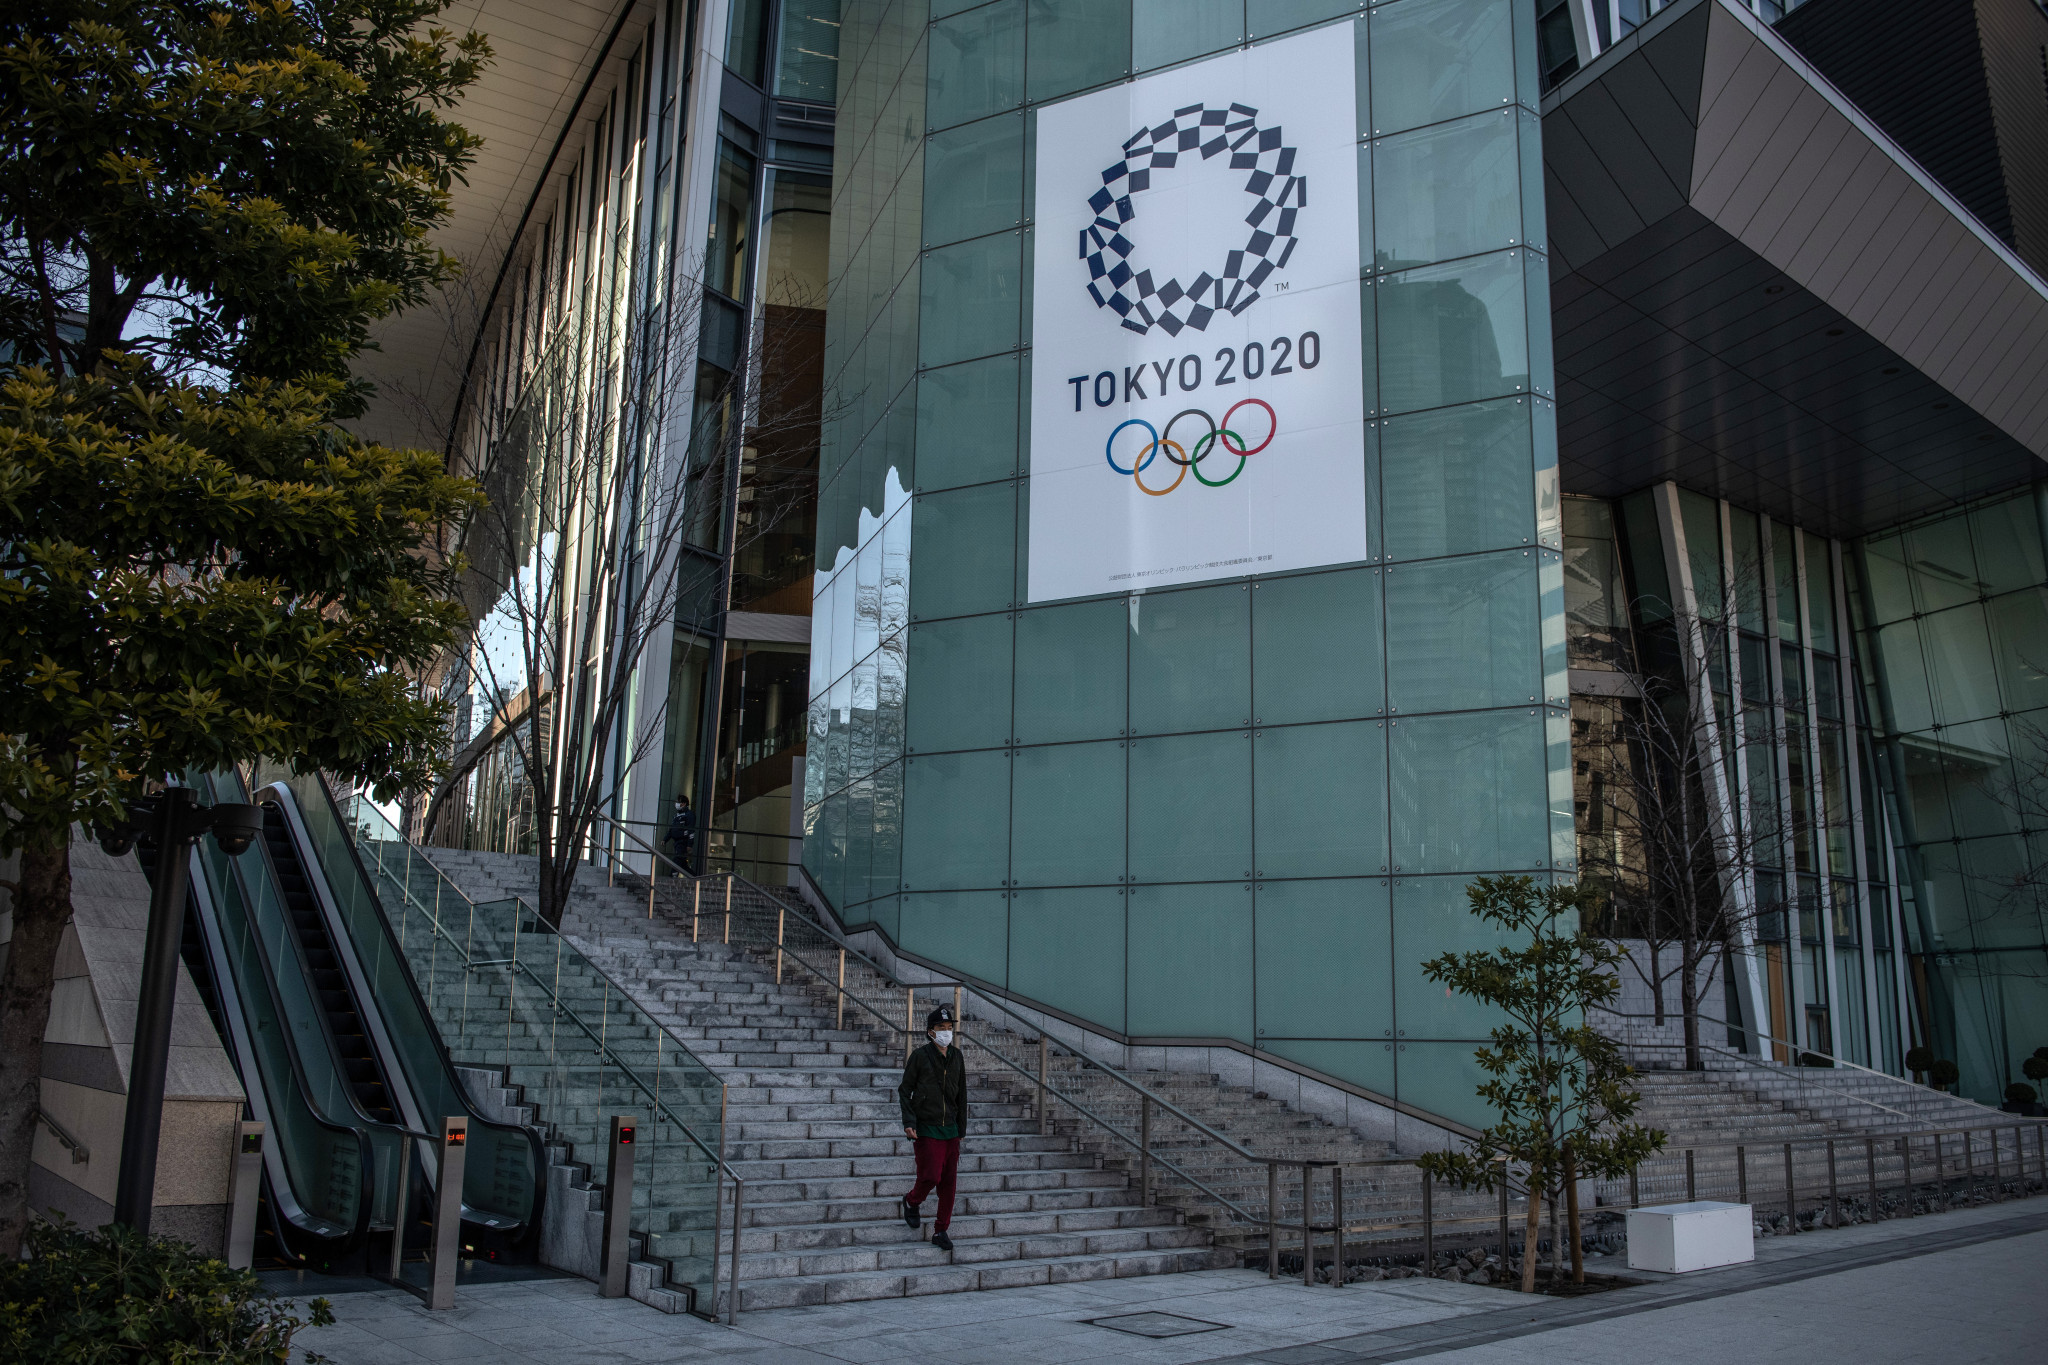 Economy of Olympic host Japan contracted by nearly five per cent in 2020, according to new data